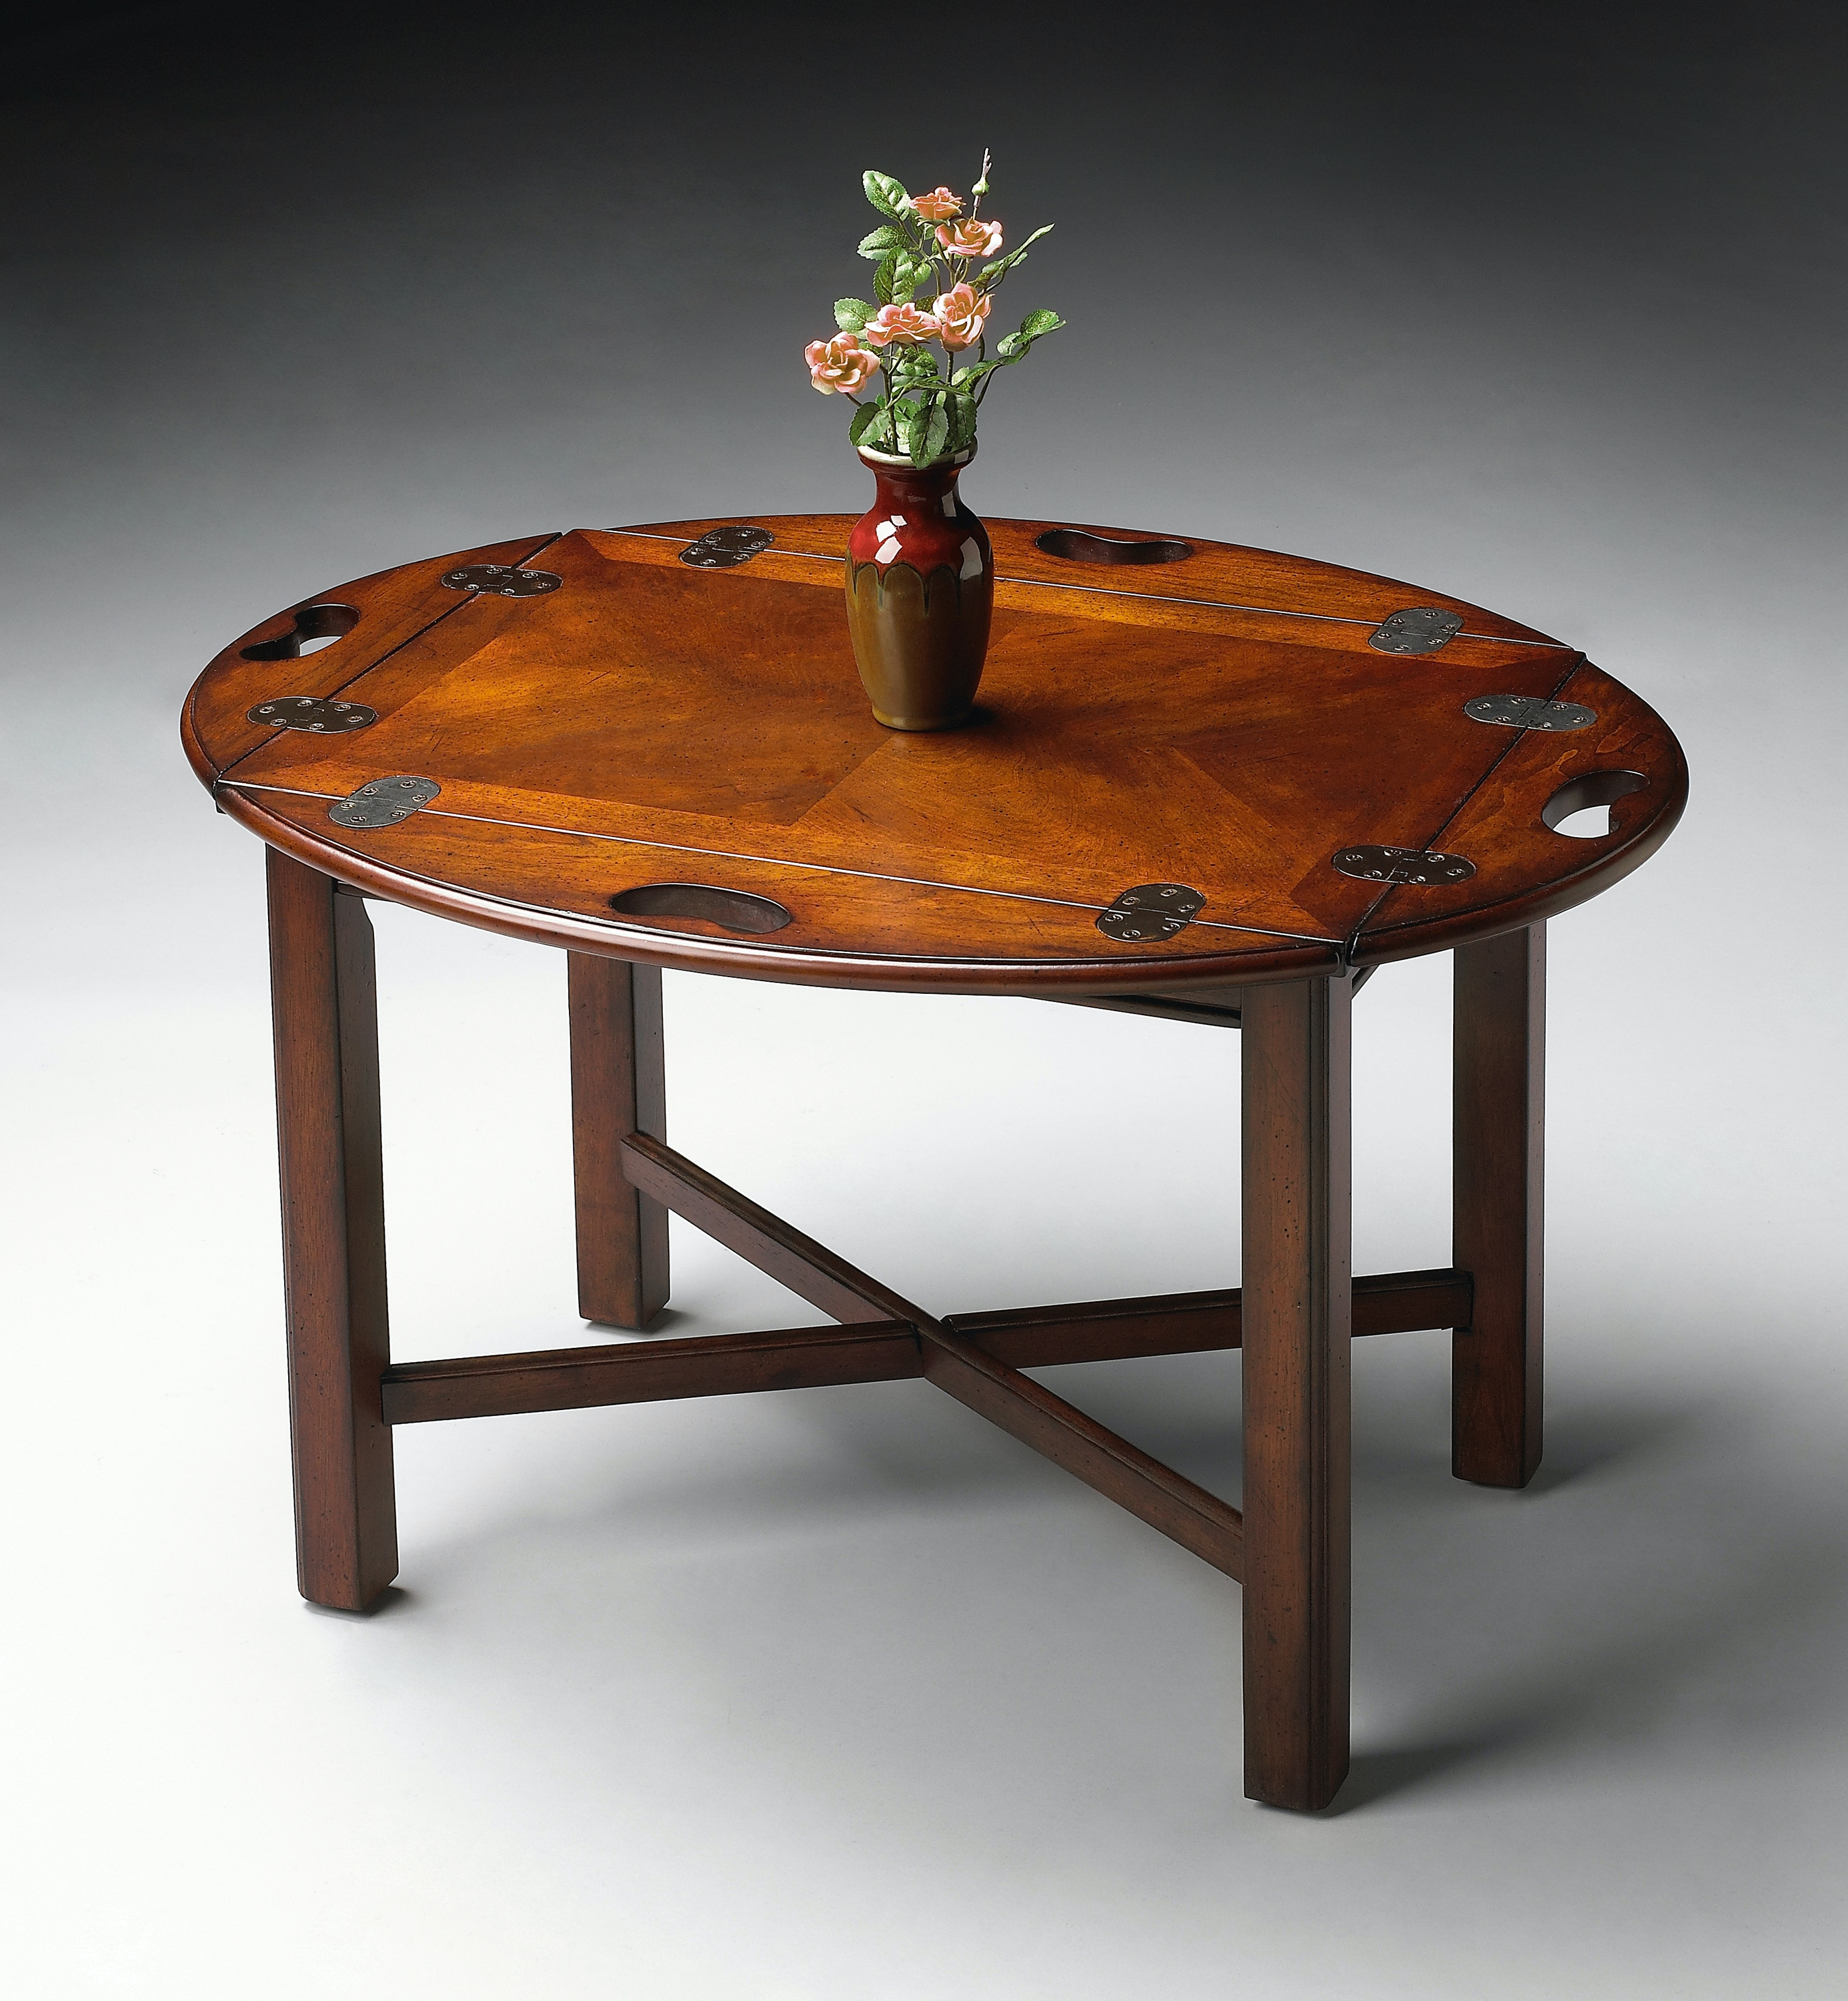 High Quality Butler Specialty Company Butler Table 2427024 ...